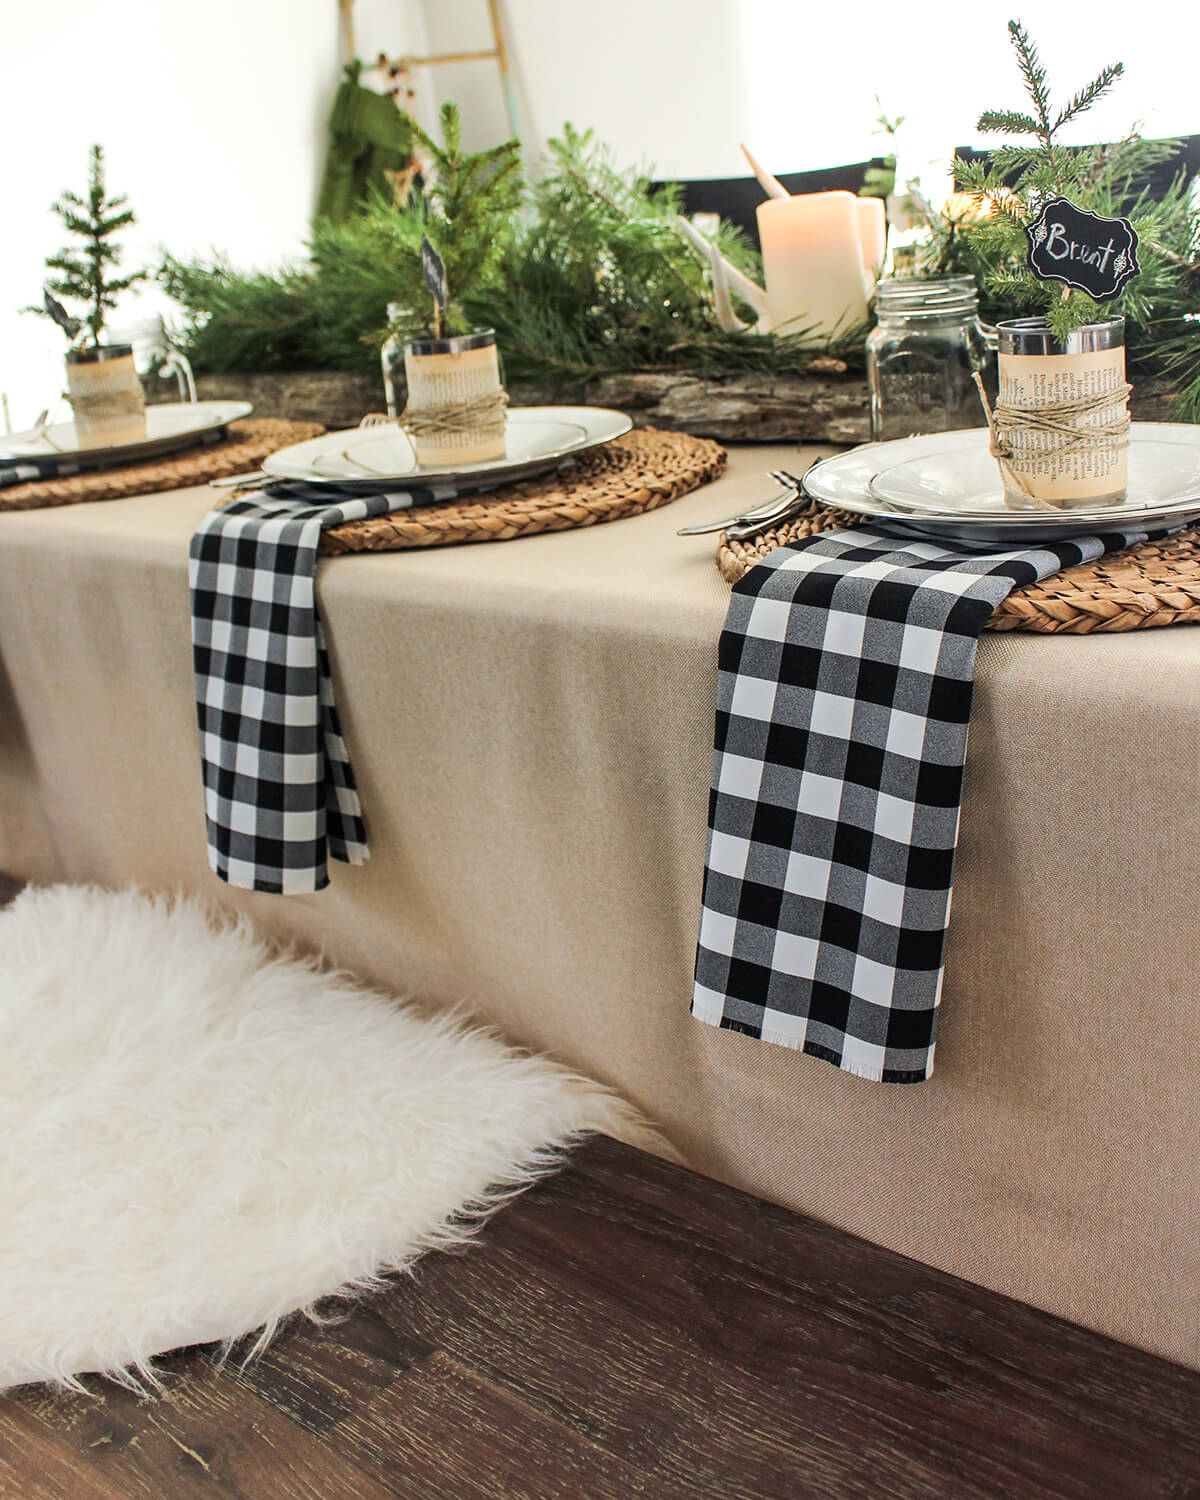 Black and White Gingham Add to a Rustic Setting